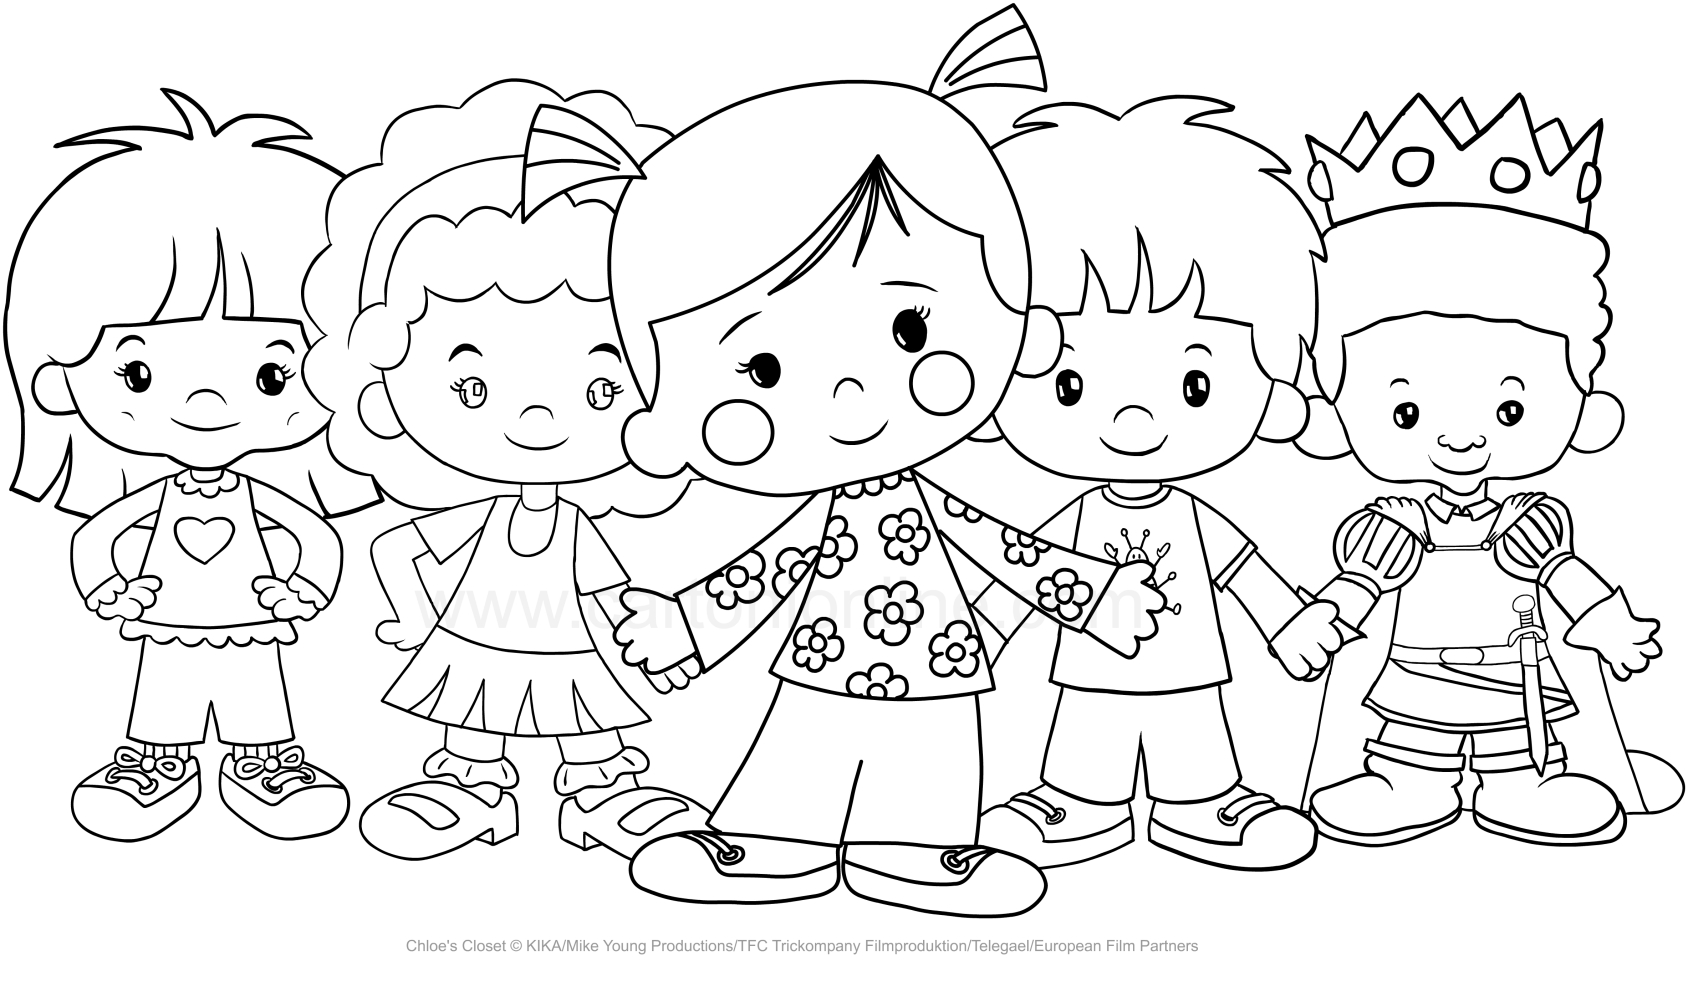 Drawing Chloe And Her Friends Chloe S Closet Coloring Page